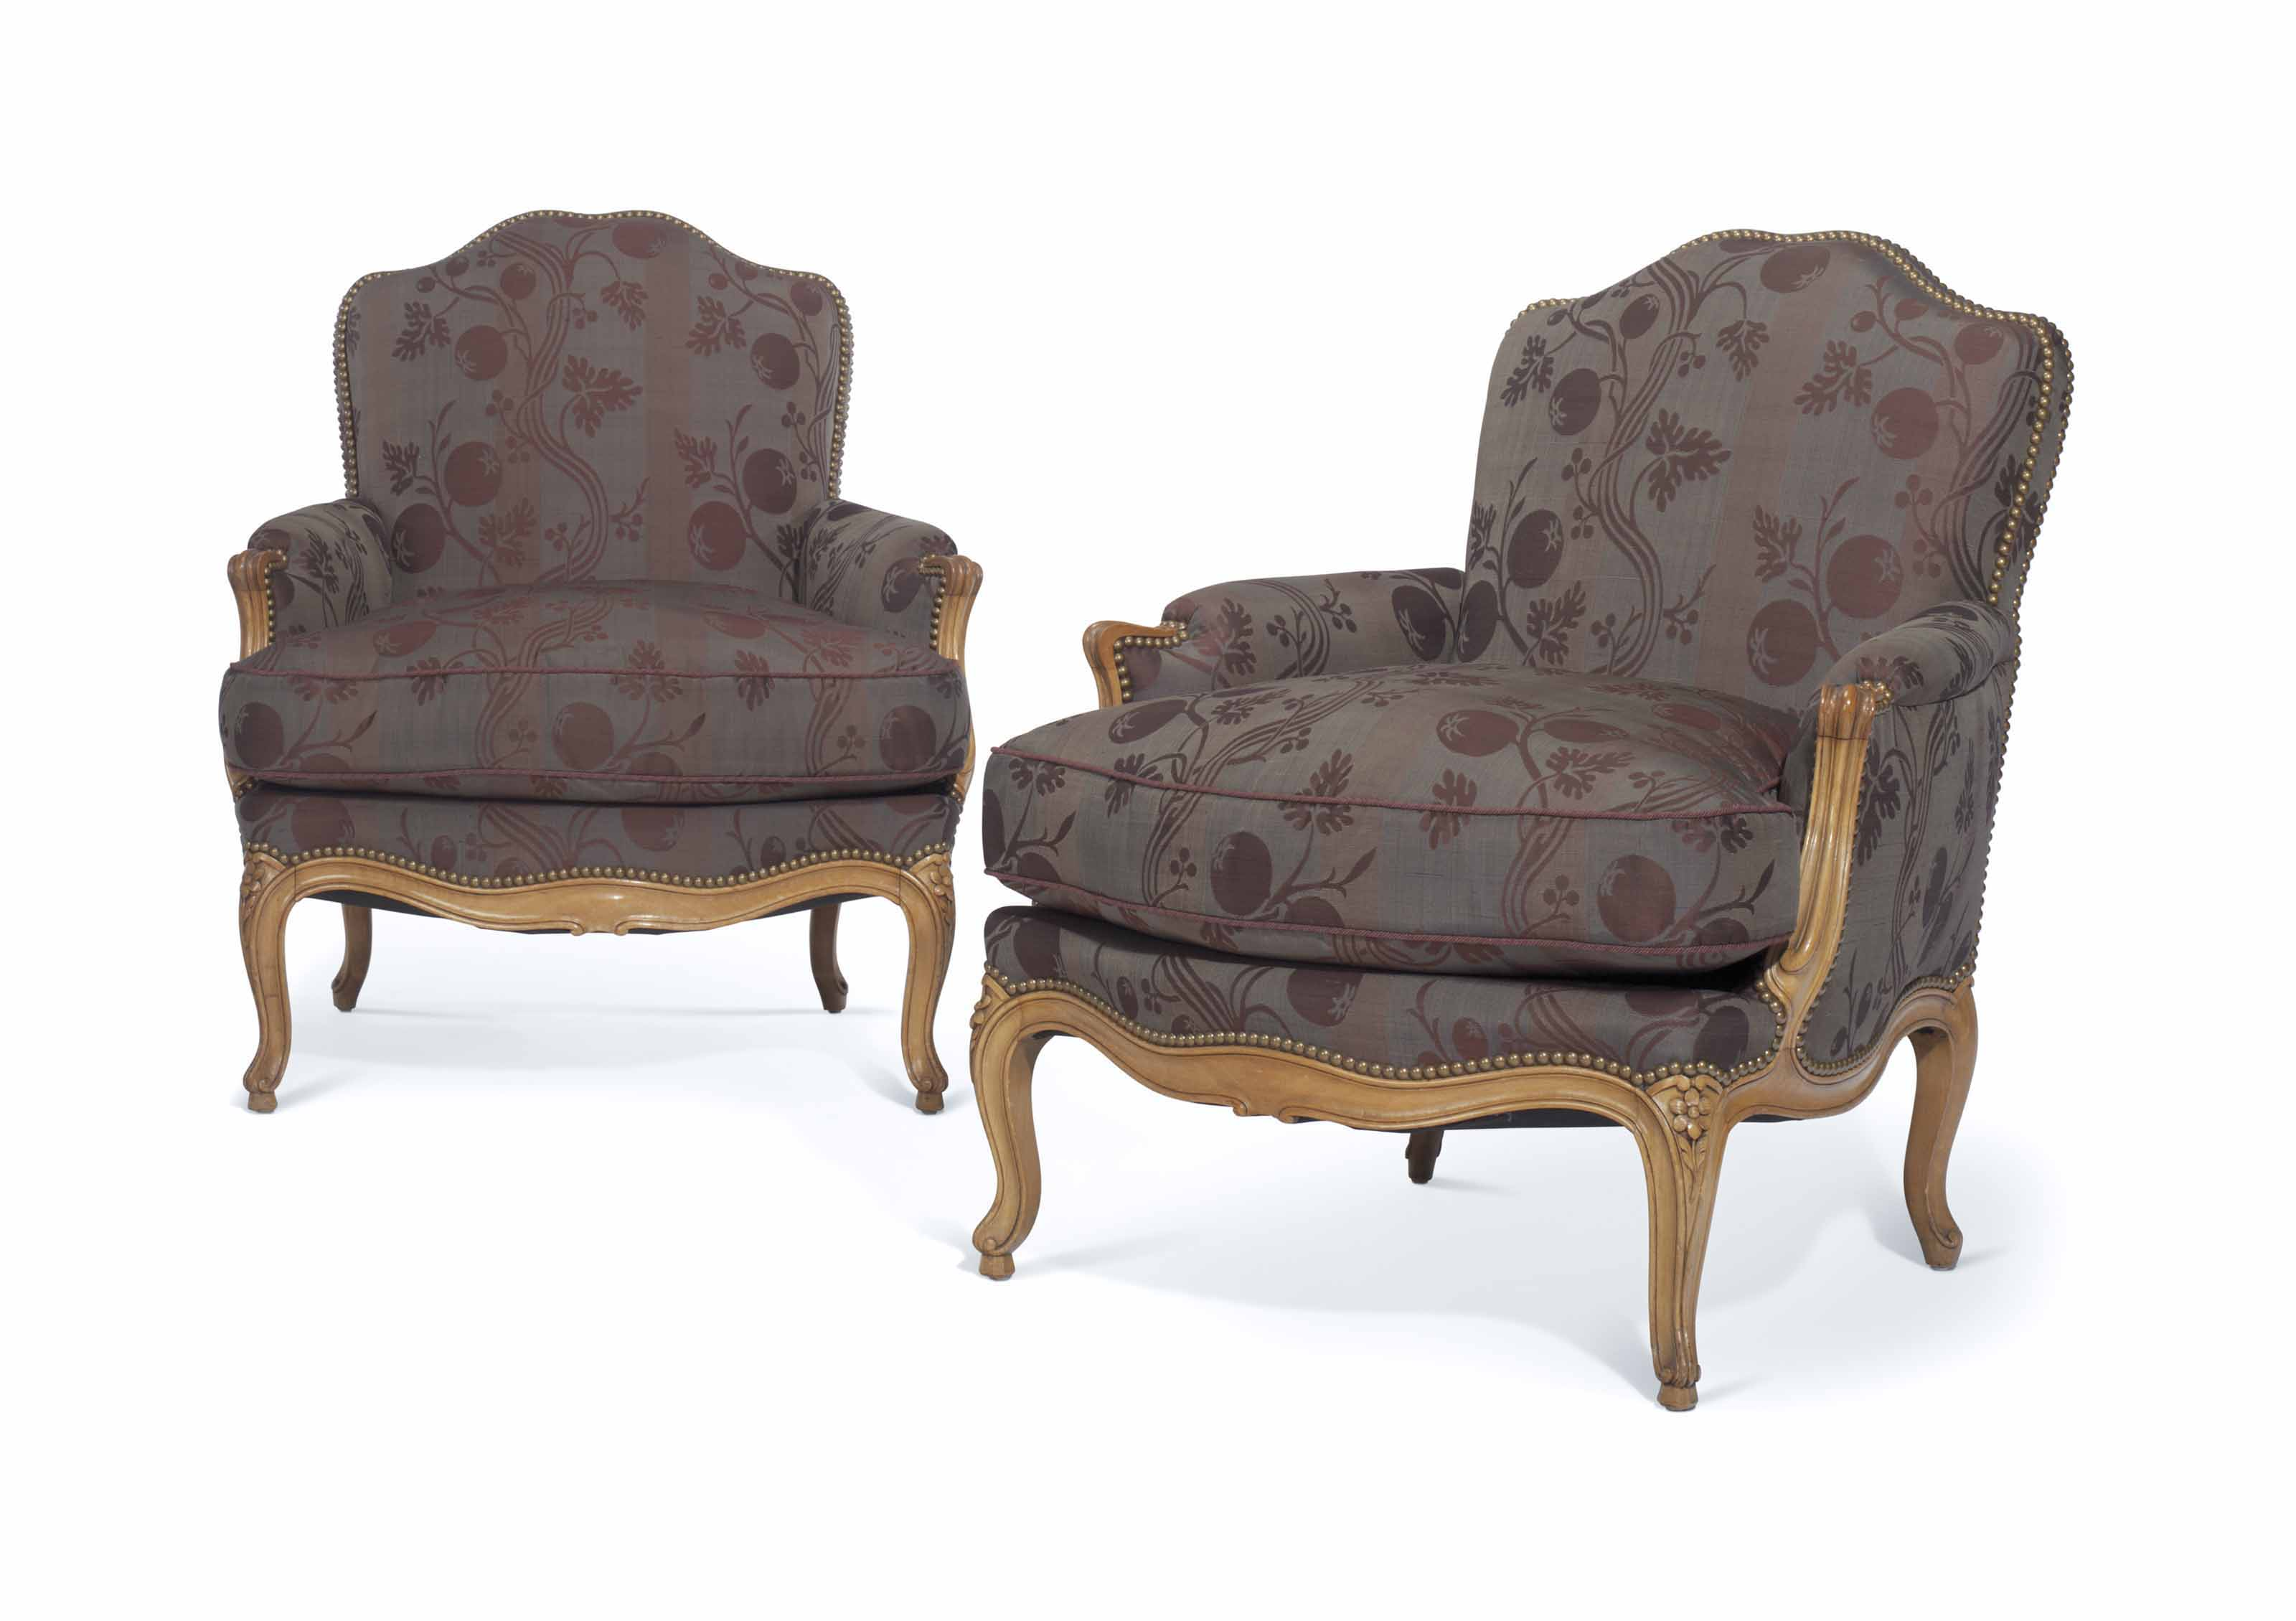 A PAIR OF LOUIS XV STYLE BEECH